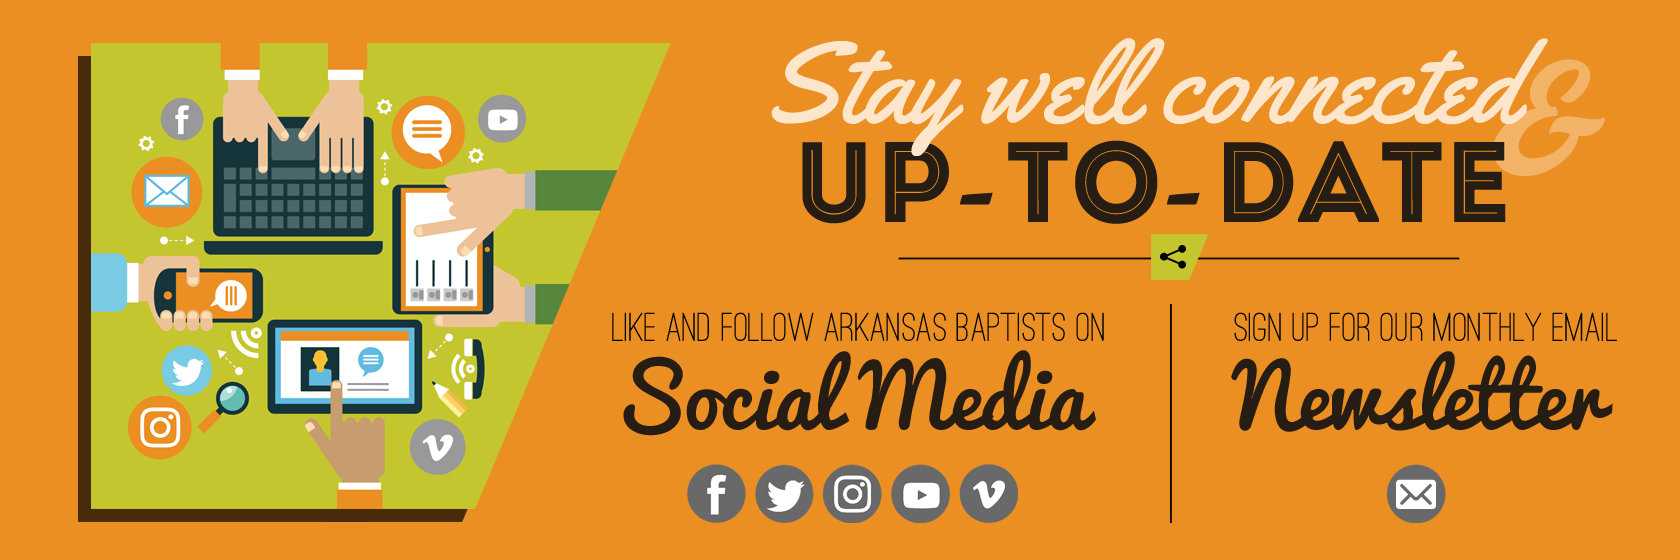 Subscribe to our newsletter and get instant updates on social media.